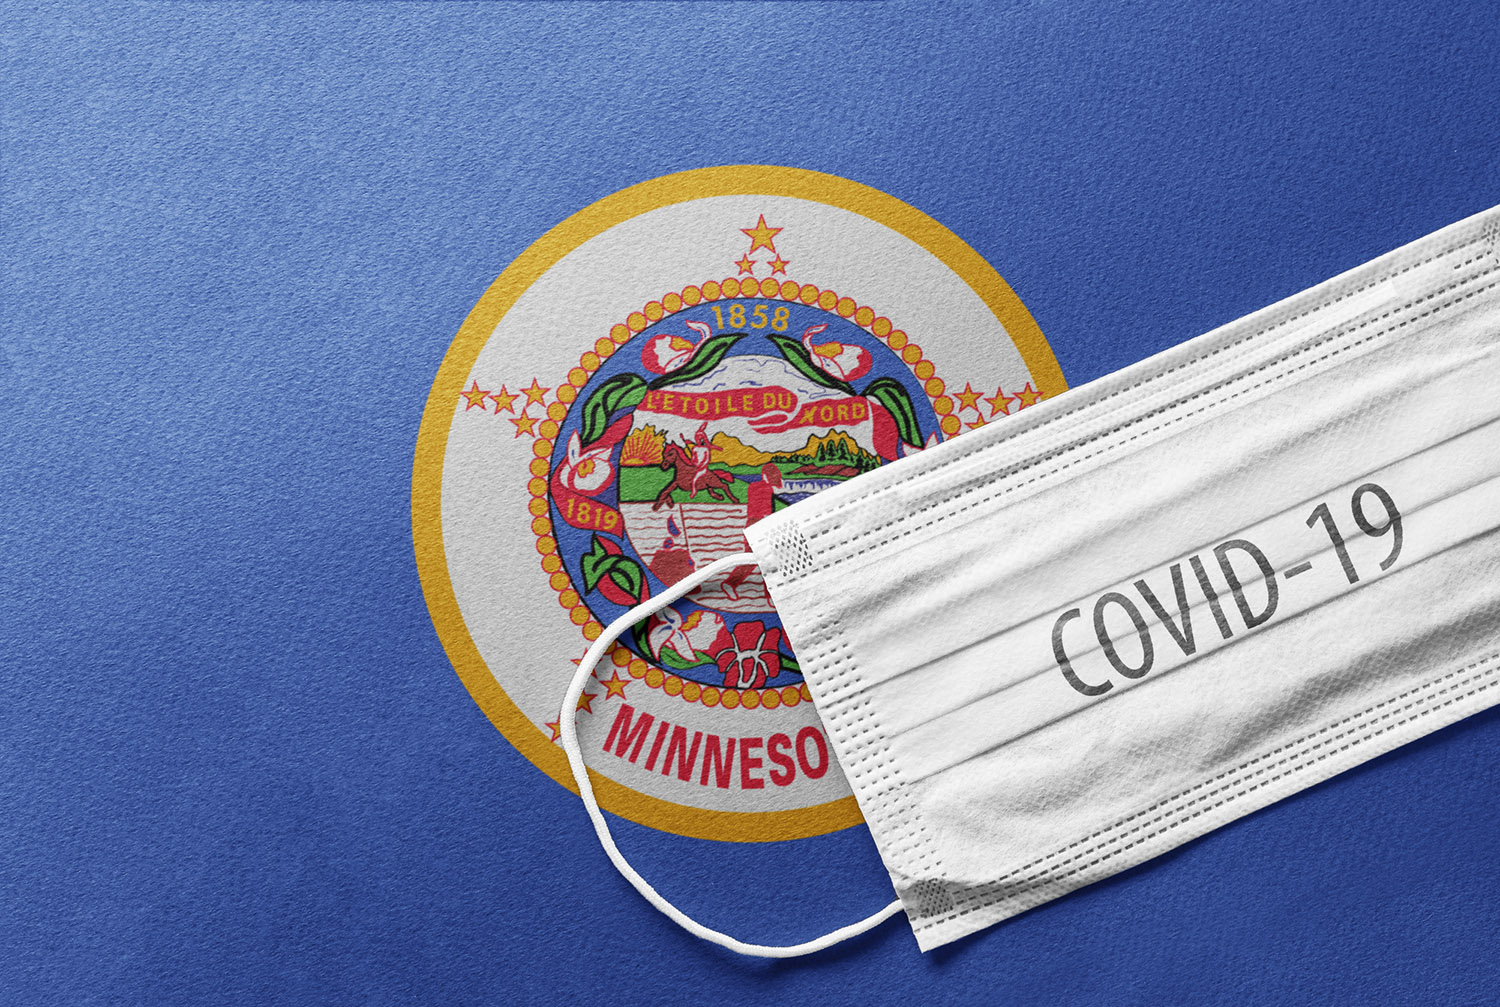 Governor Walz announces timeline to end COVID-19 Restrictions in Minnesota